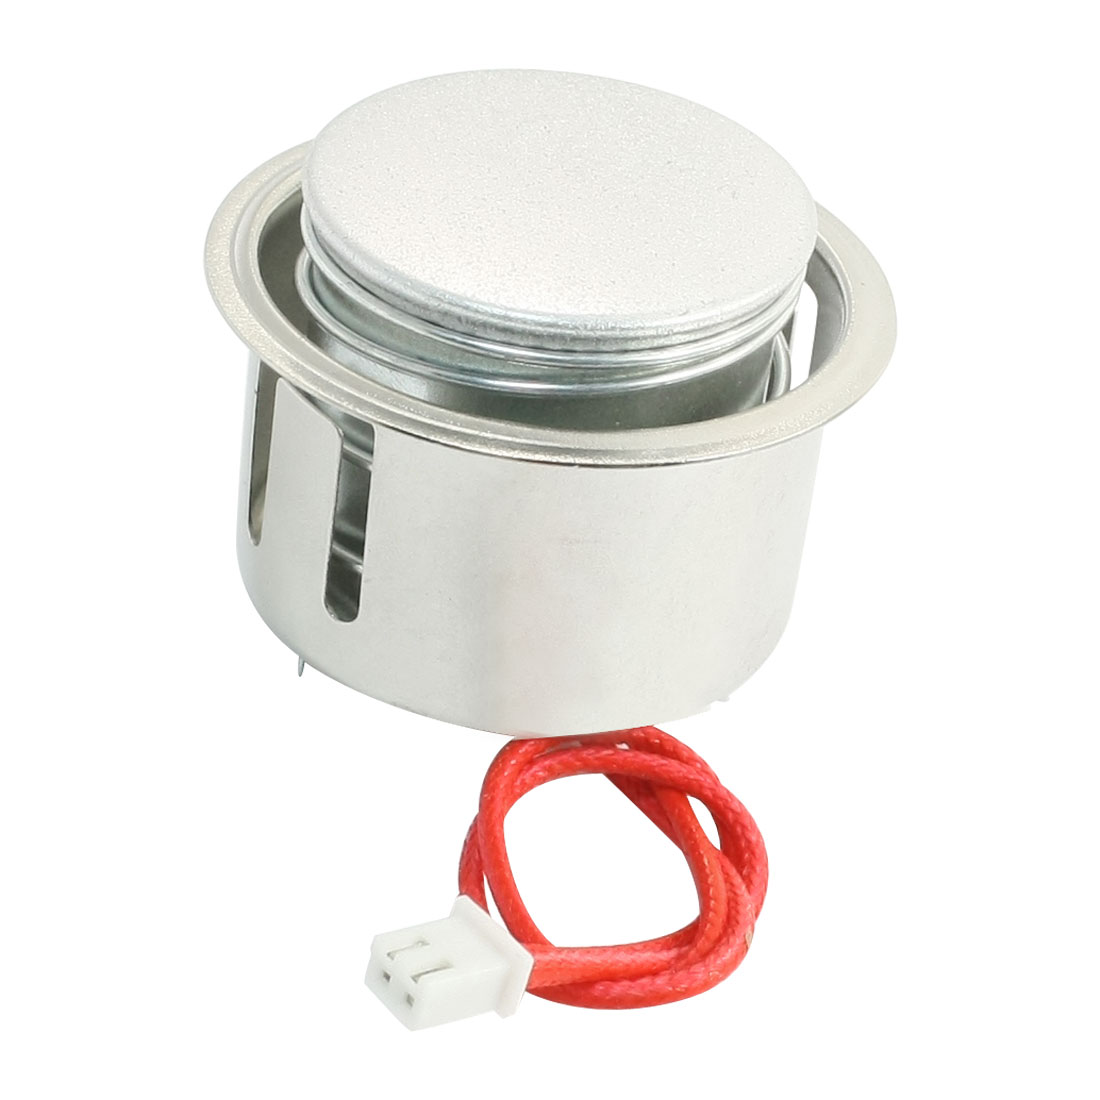 Home Kitchen Electric Rice Cooker Magnetic 2 Wires Metal Center Thermostat